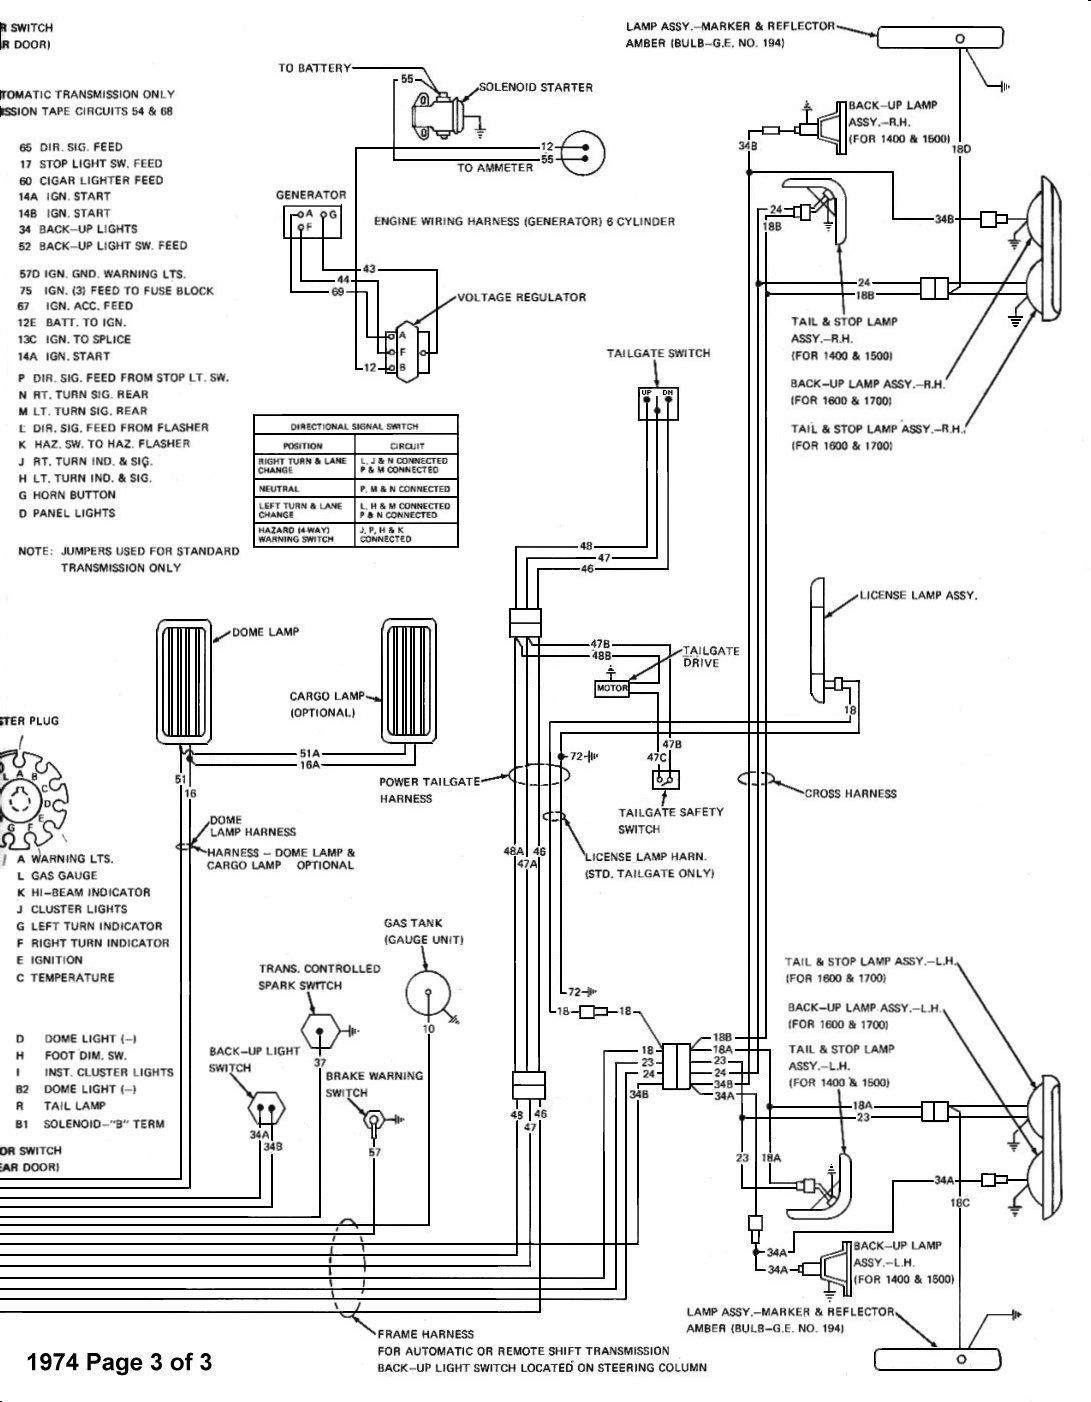 0bf842fecdc018e6e34d99f6dbec24a5 96 jeep cherokee wiring diagram blower motor fuse 96 jeep cherokee wiring diagram at honlapkeszites.co